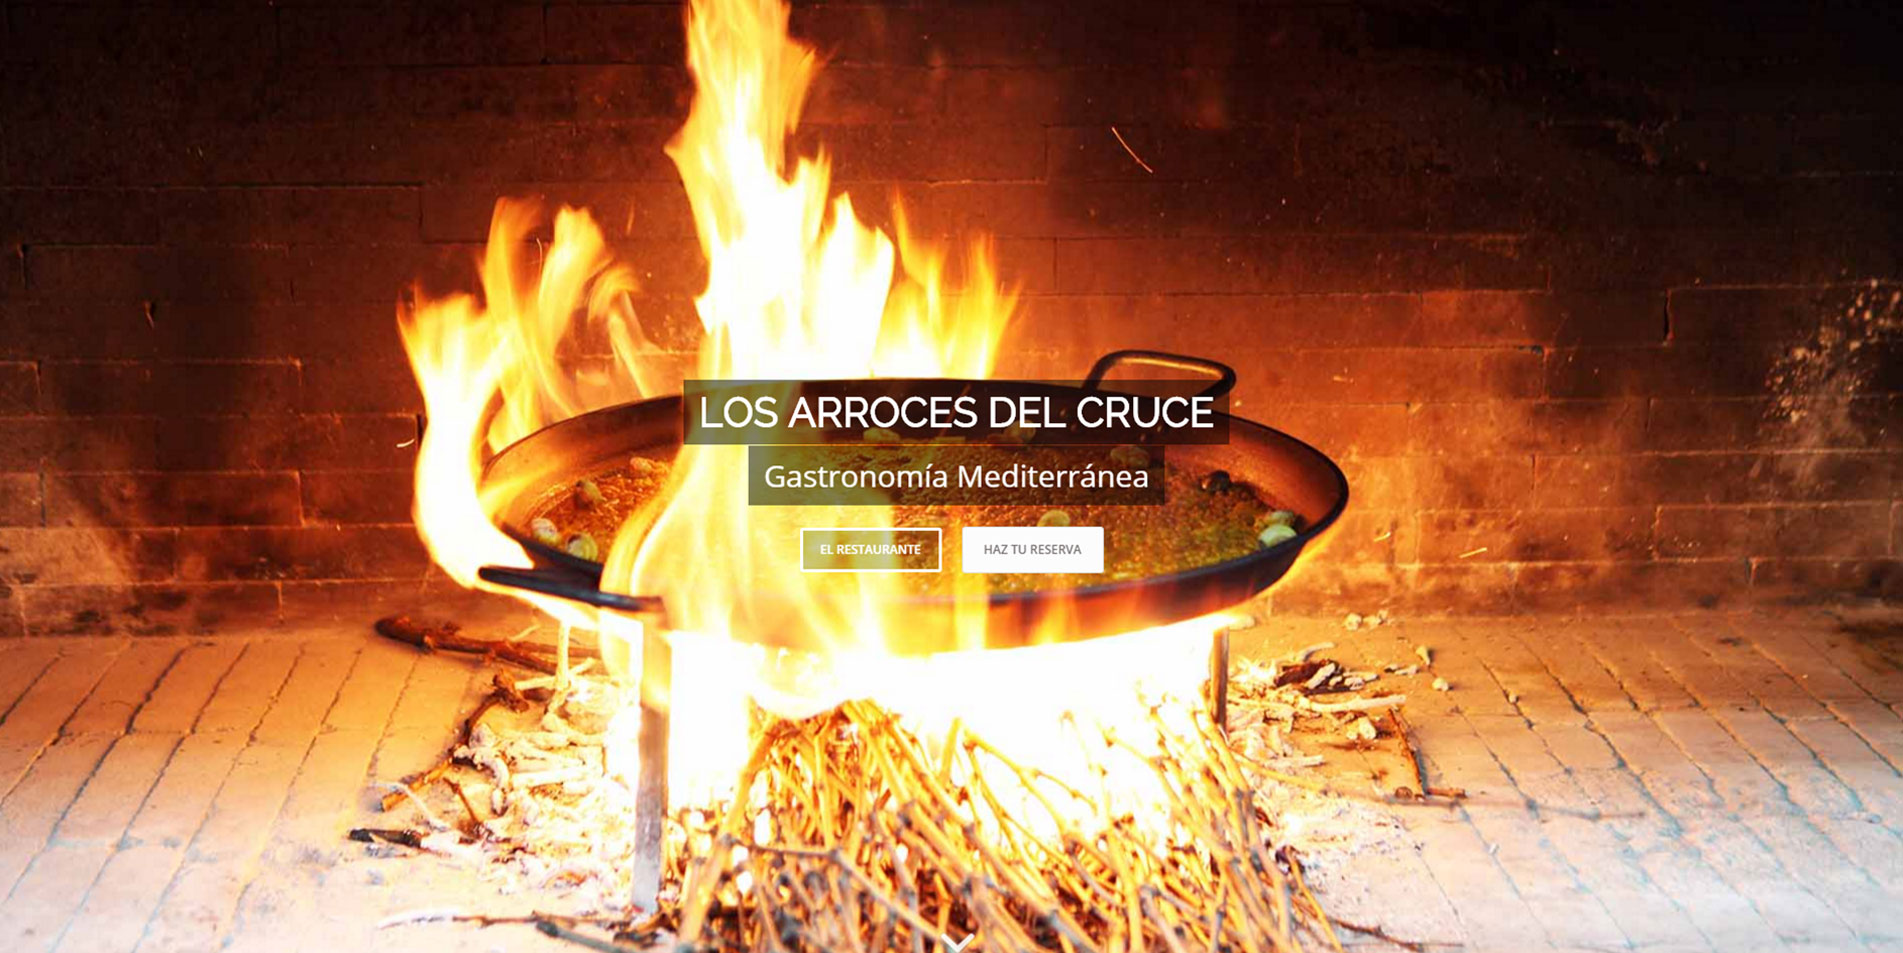 Playmark_Los_Arroces_del_Cruce